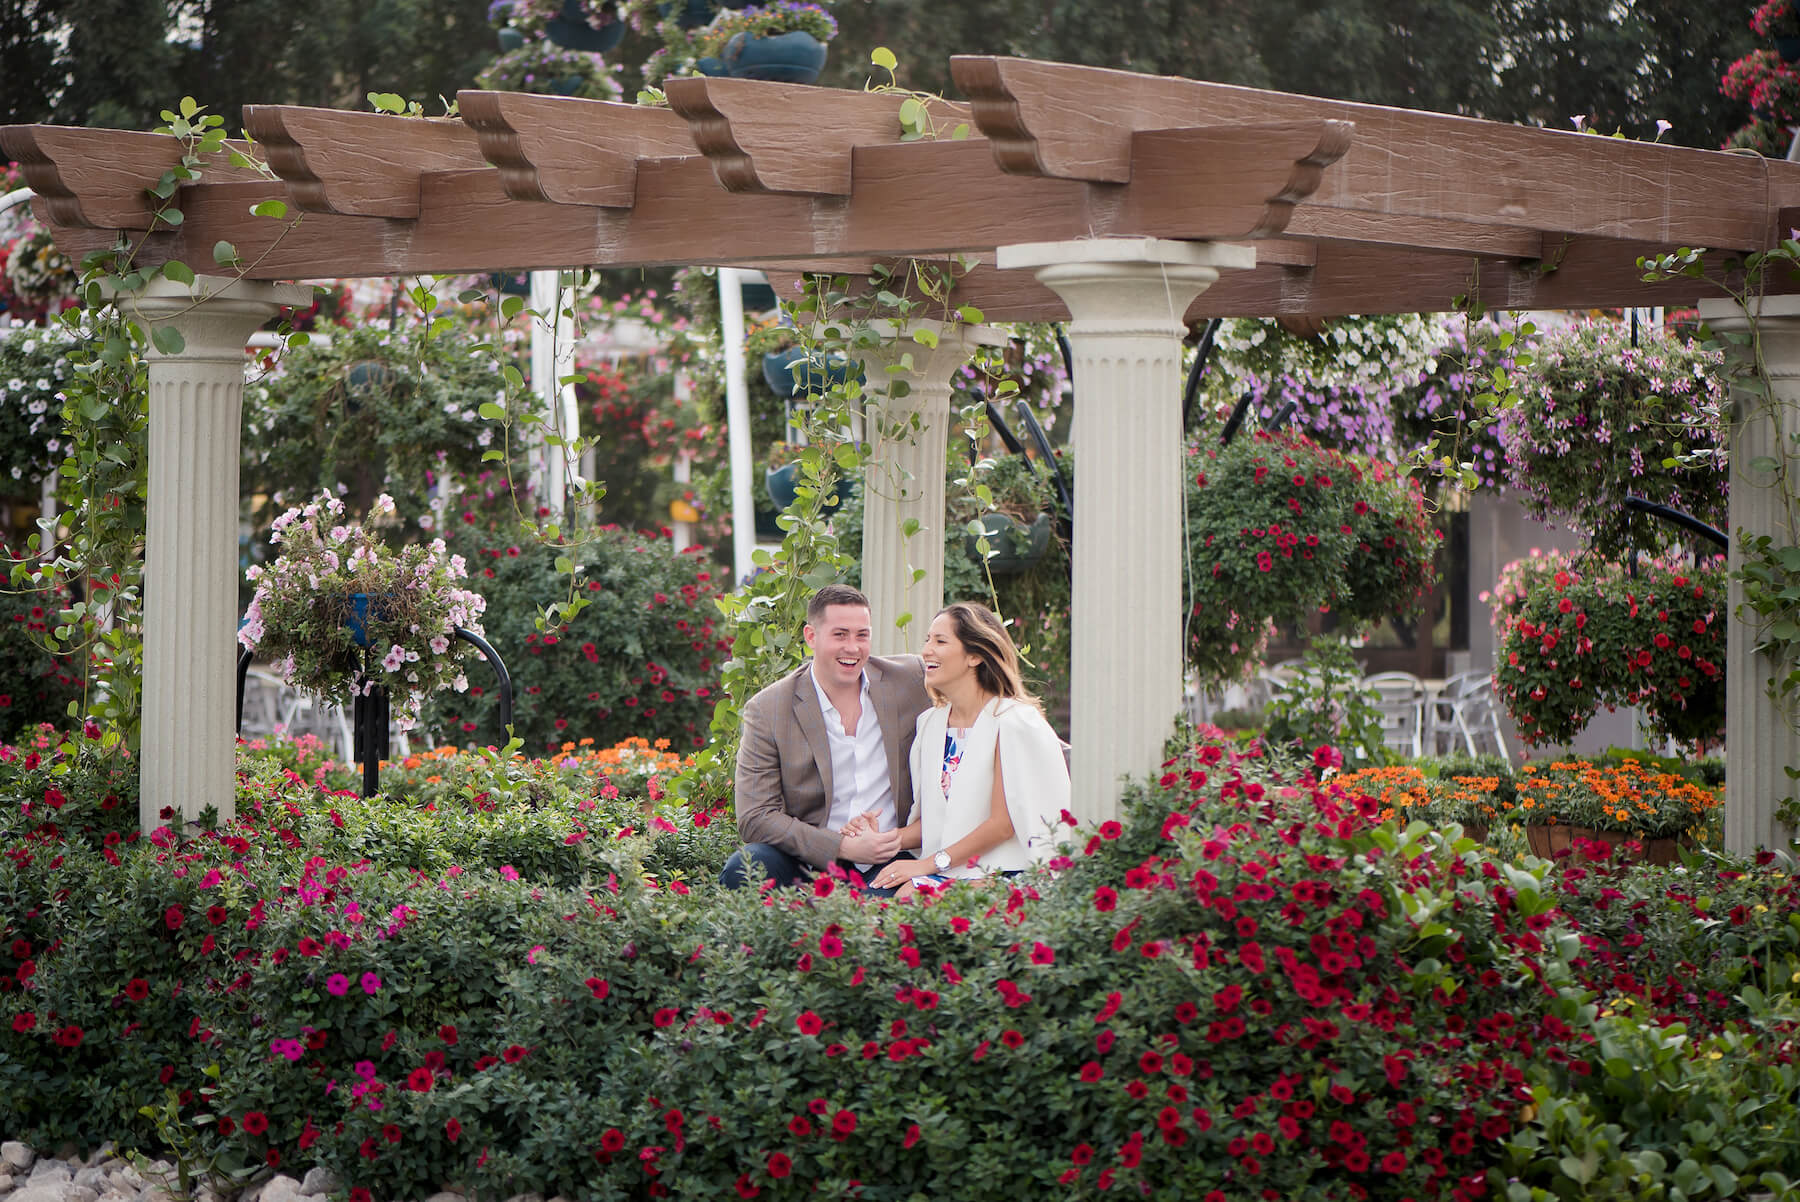 Couple sitting together in a gazebo area amongst many flowers in the Dubai Miracle Garden